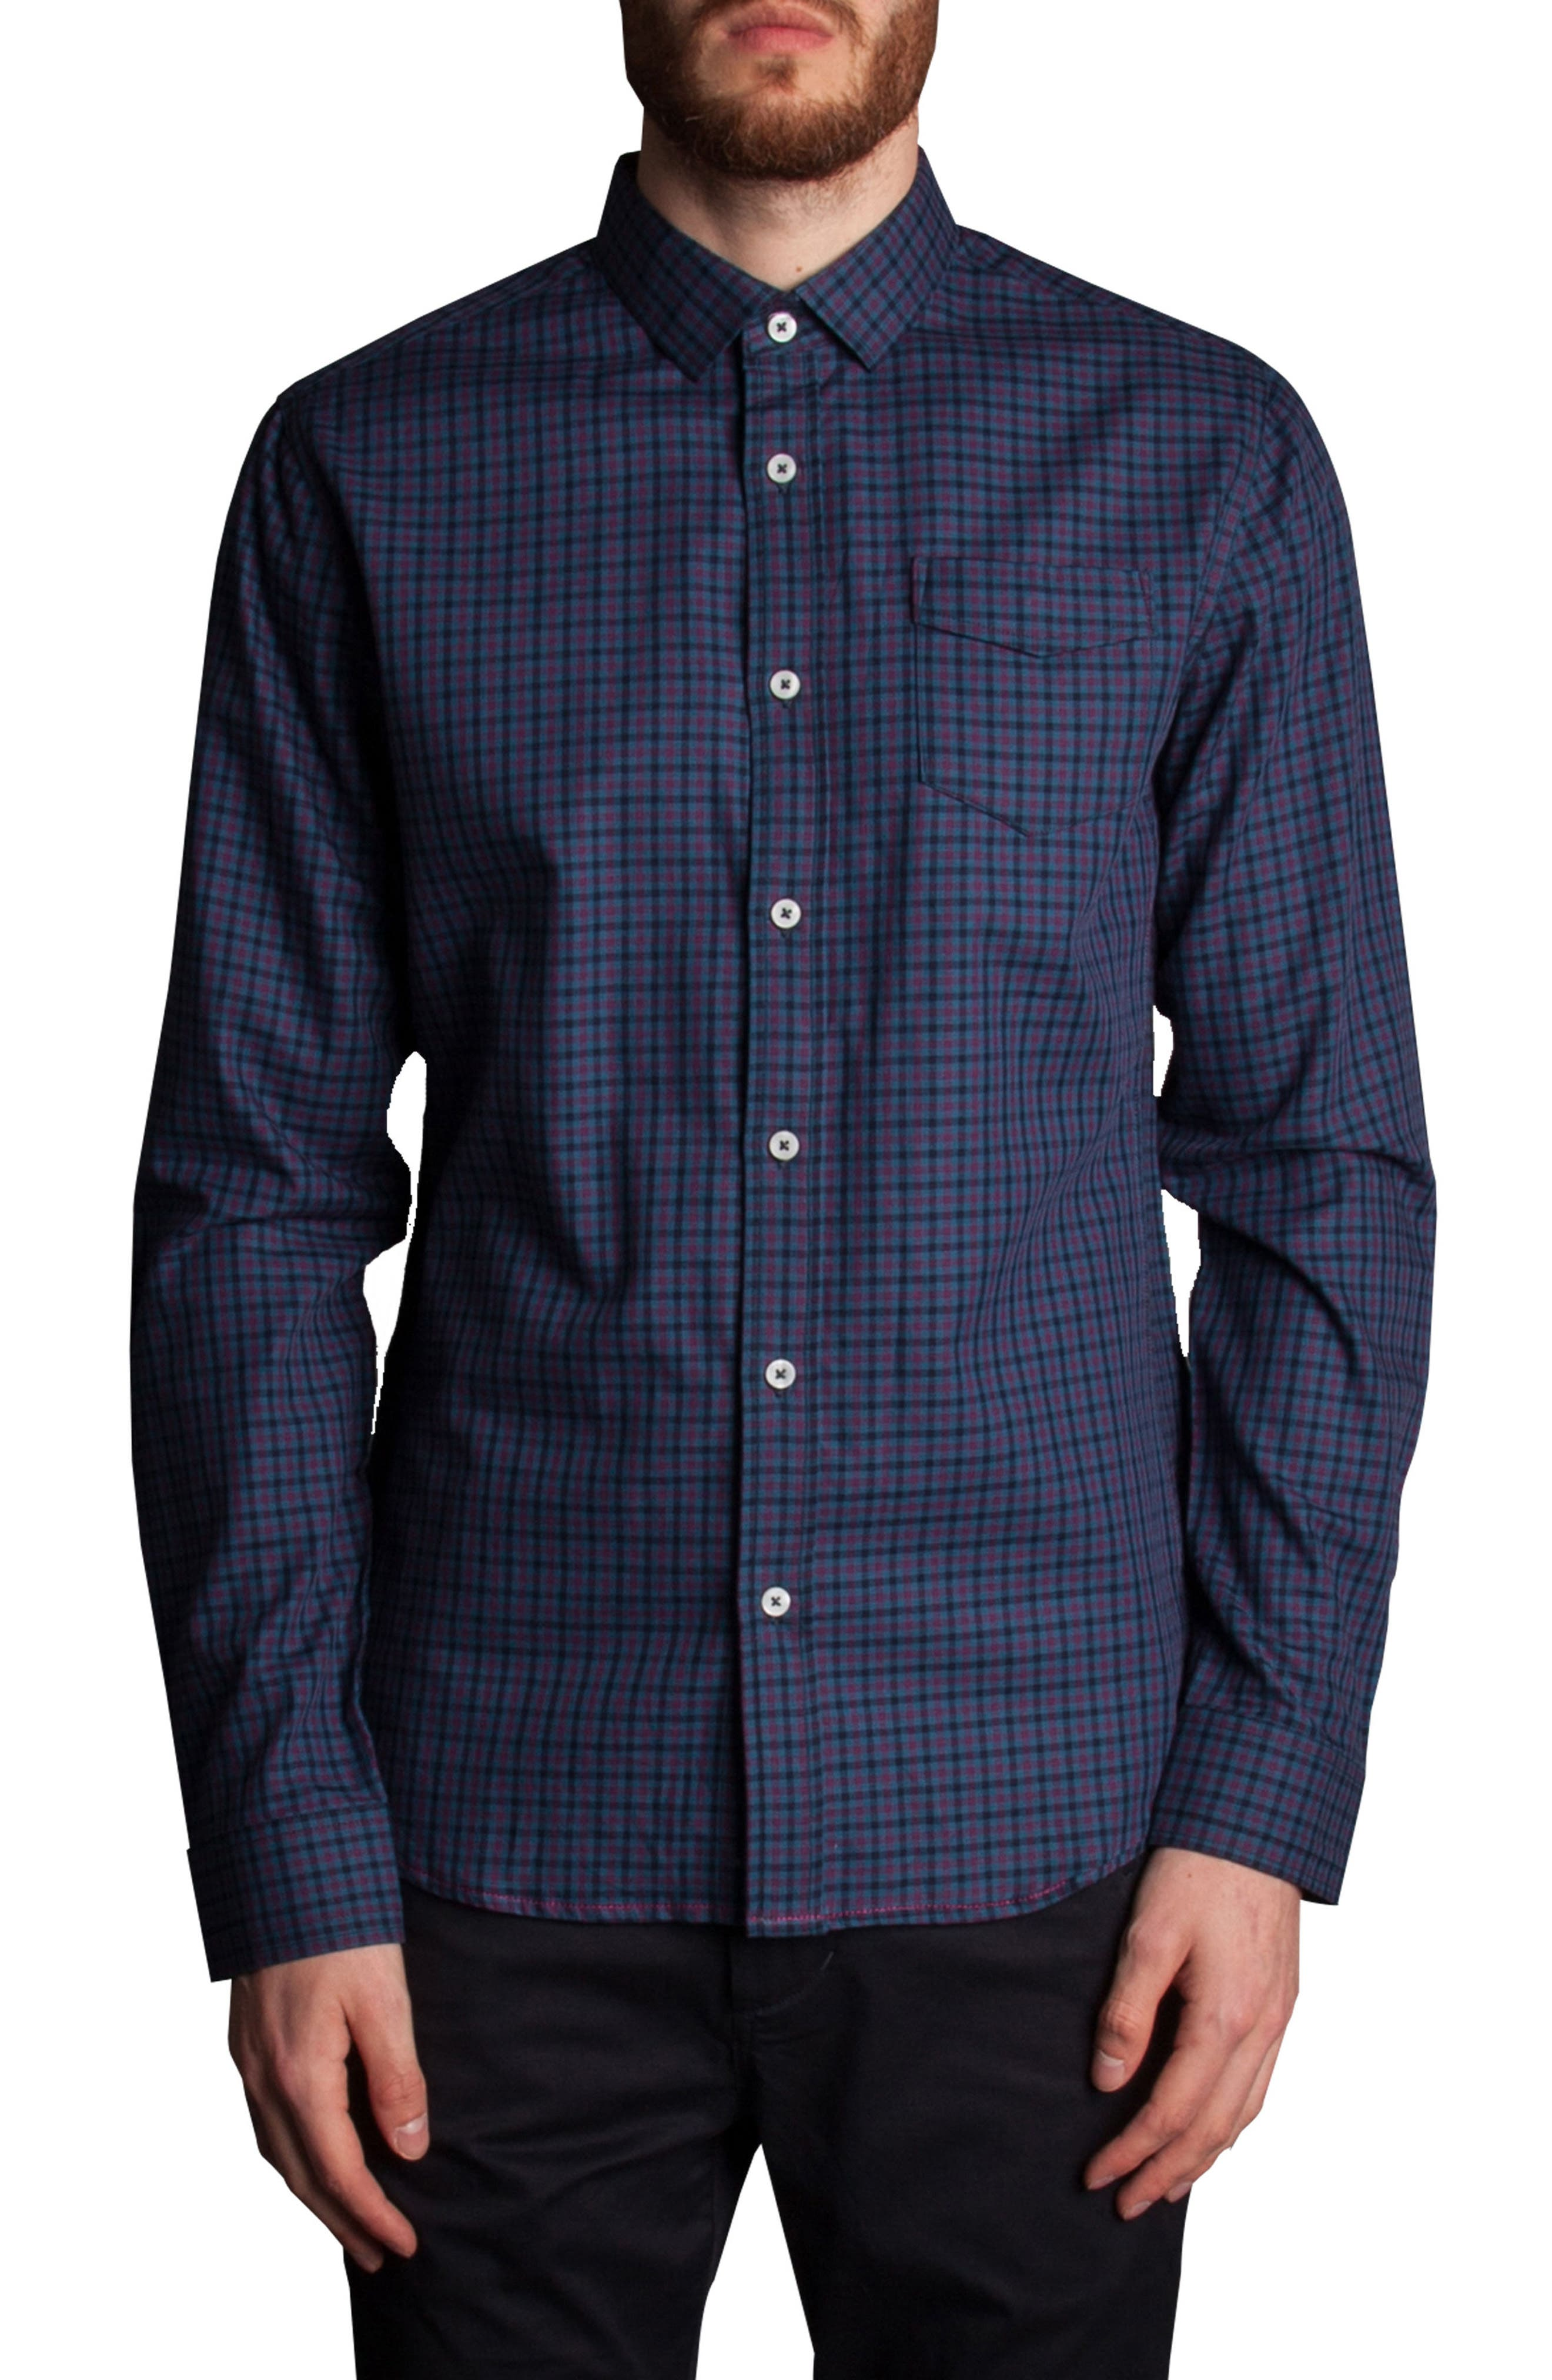 Main Image - Descendant of Thieves Inter Plaid Sport Shirt